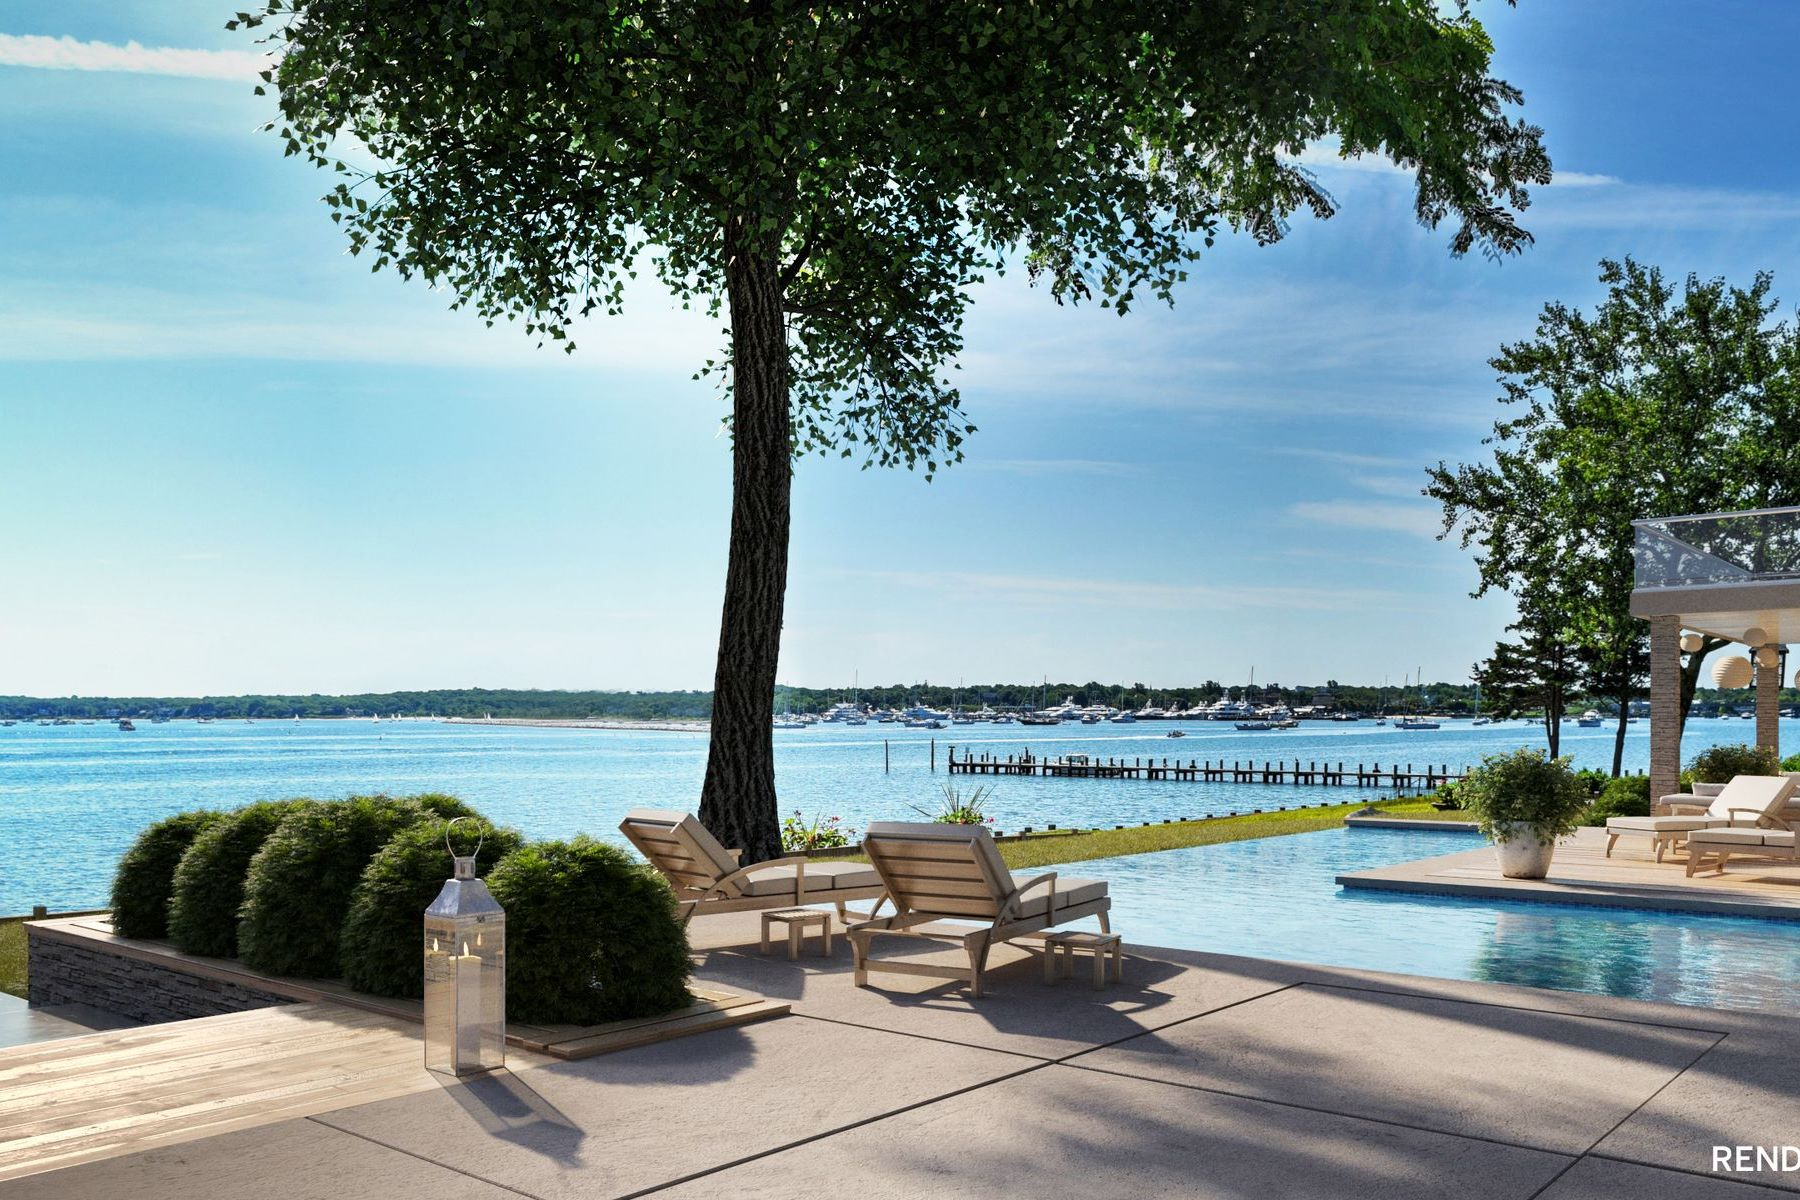 Single Family Homes für Verkauf beim Extraordinary Waterfront Dream Property 24 East Harbor Drive, Sag Harbor, New York 11963 Vereinigte Staaten